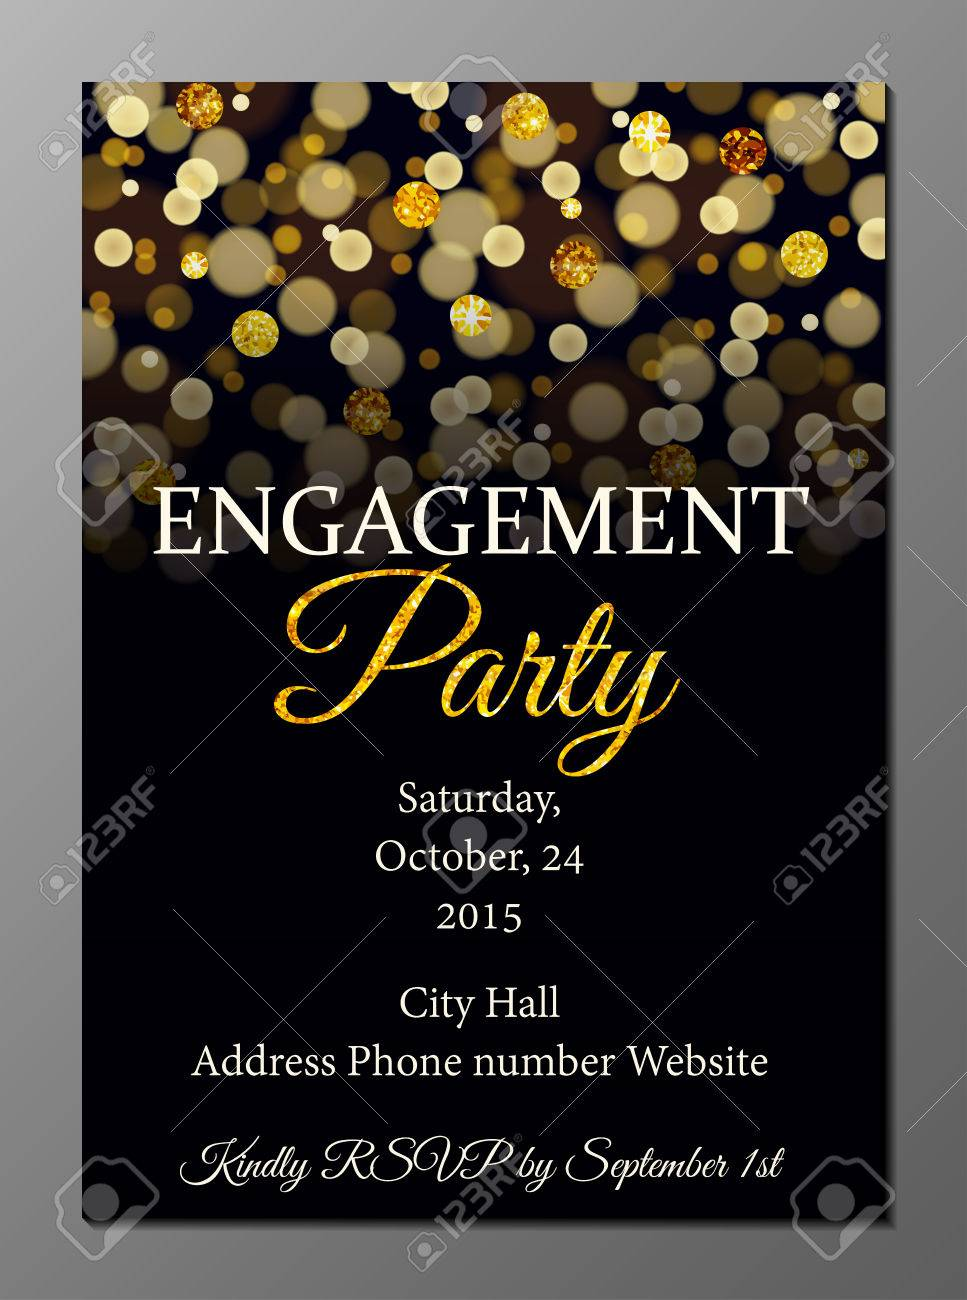 Vector Illustration Of Party Invitation Card Design Template – Party Invitation Card Design